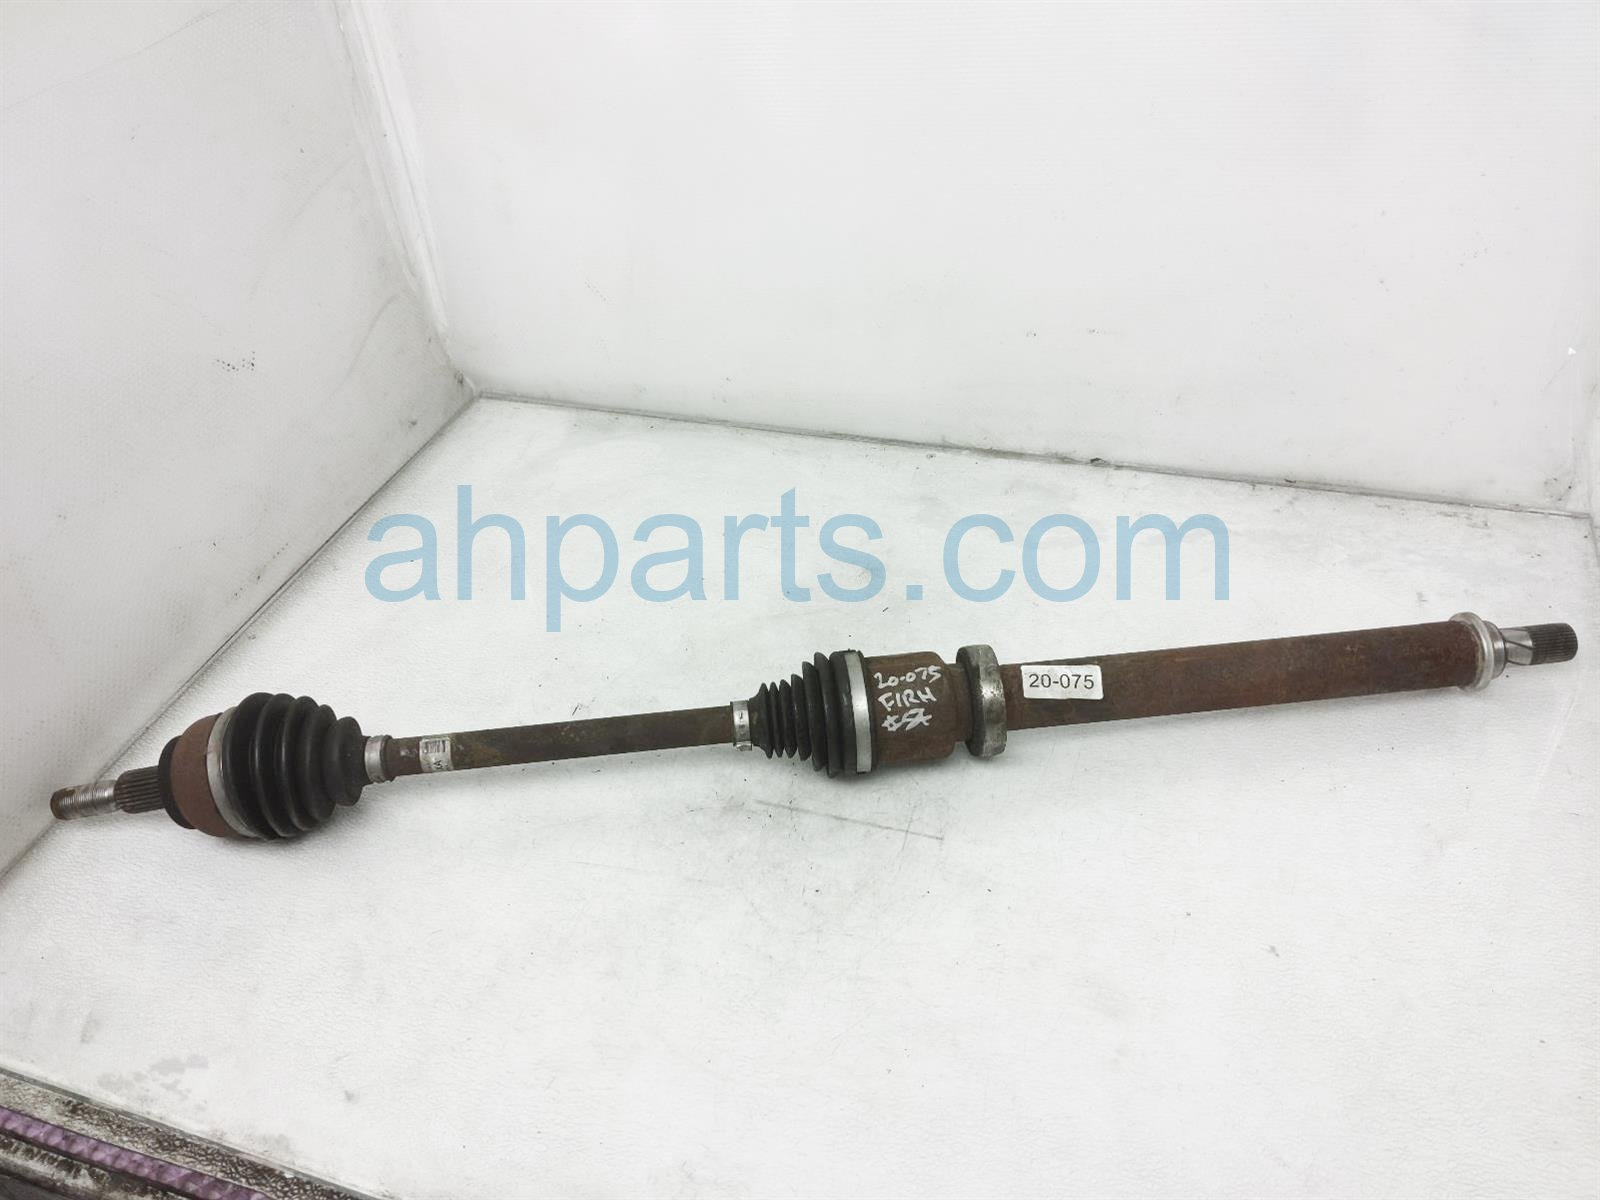 2014 Ford Focus Front Passenger Axle Drive Shaft FV6Z 3B436 R Replacement